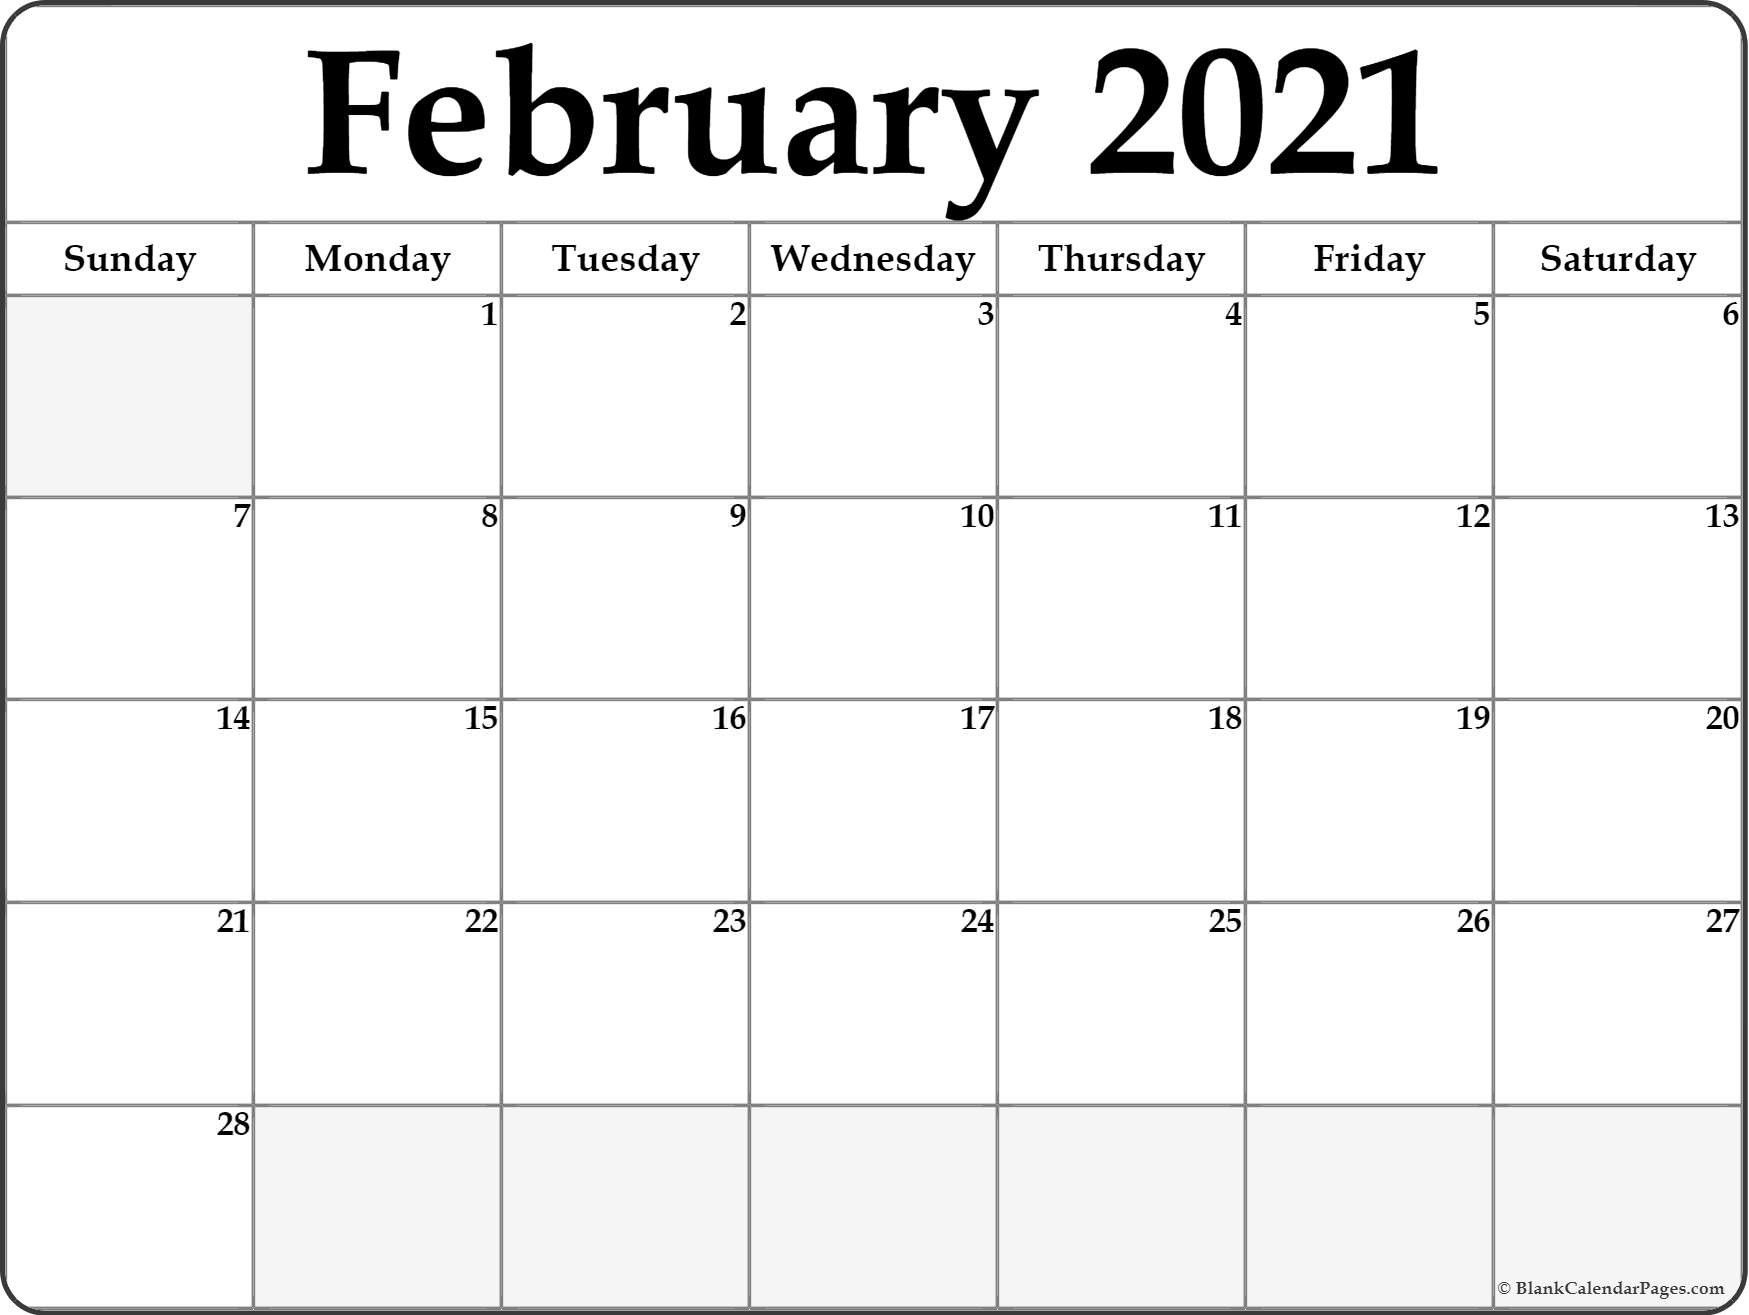 Catch Blank Calendars 2021 Printable Saturday To Friday